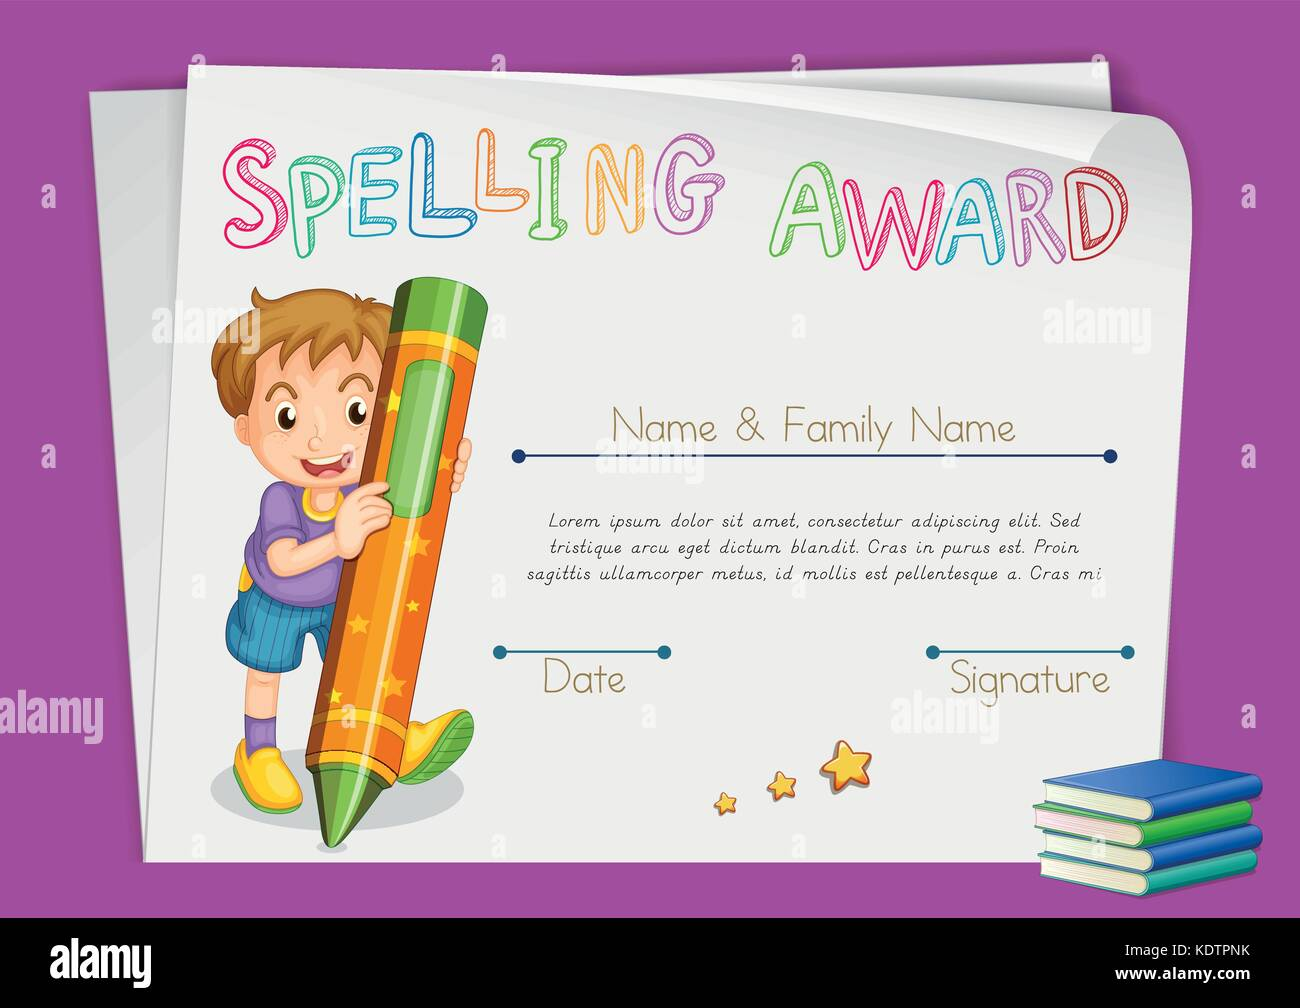 Spelling award certificate template with kids and crayon spelling award certificate template with kids and crayon illustration maxwellsz